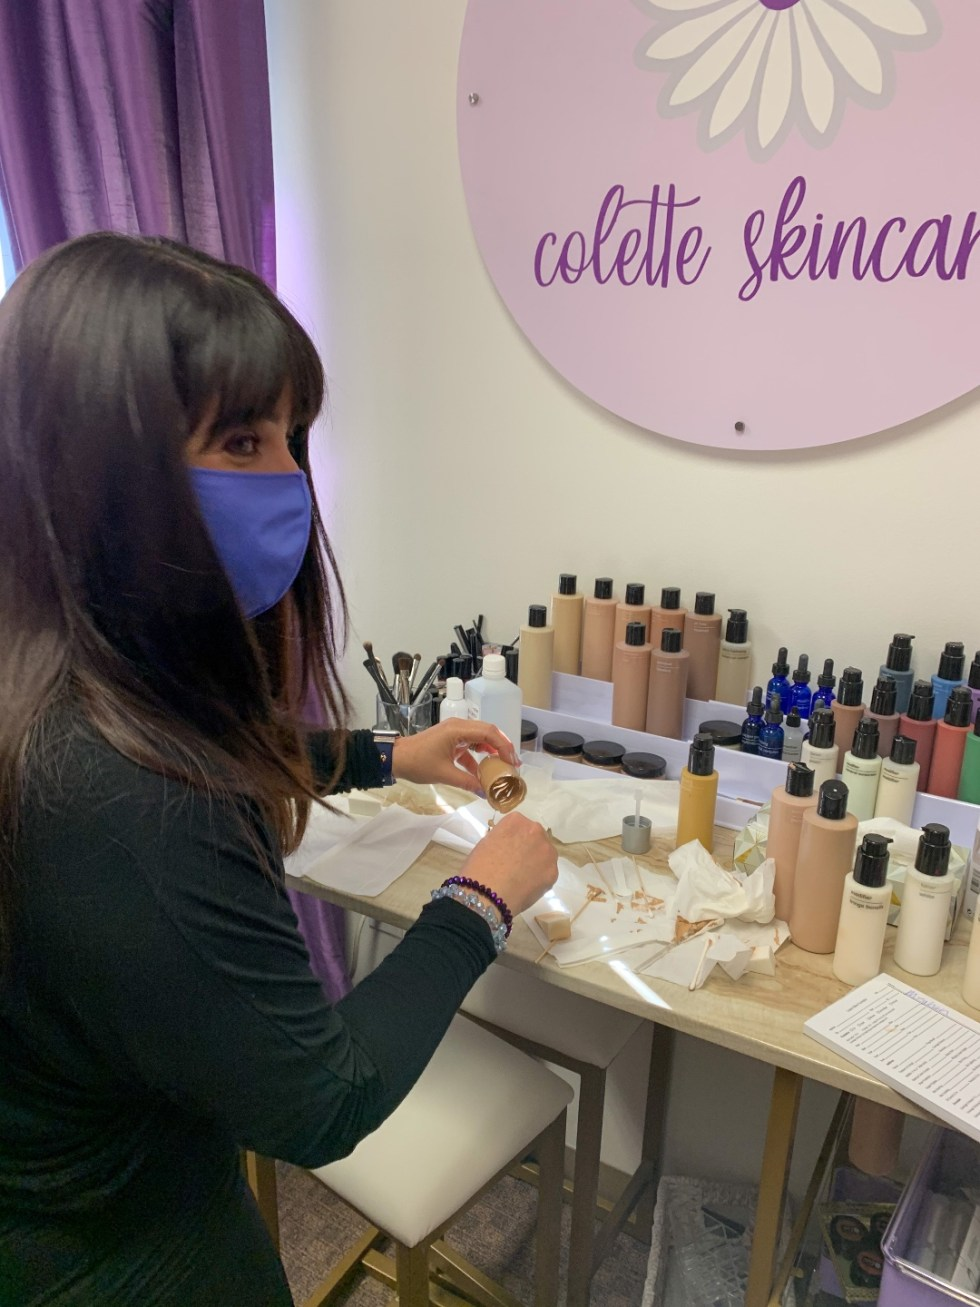 A Custom Foundation Blend at Colette Skincare - I'm Fixin' To - @imfixintoblog |Custom Foundation Blend by popular NC beauty blog, I'm Fixin' To: image of a woman wearing an all black outfit and purple face mask and mixing a custom foundation.